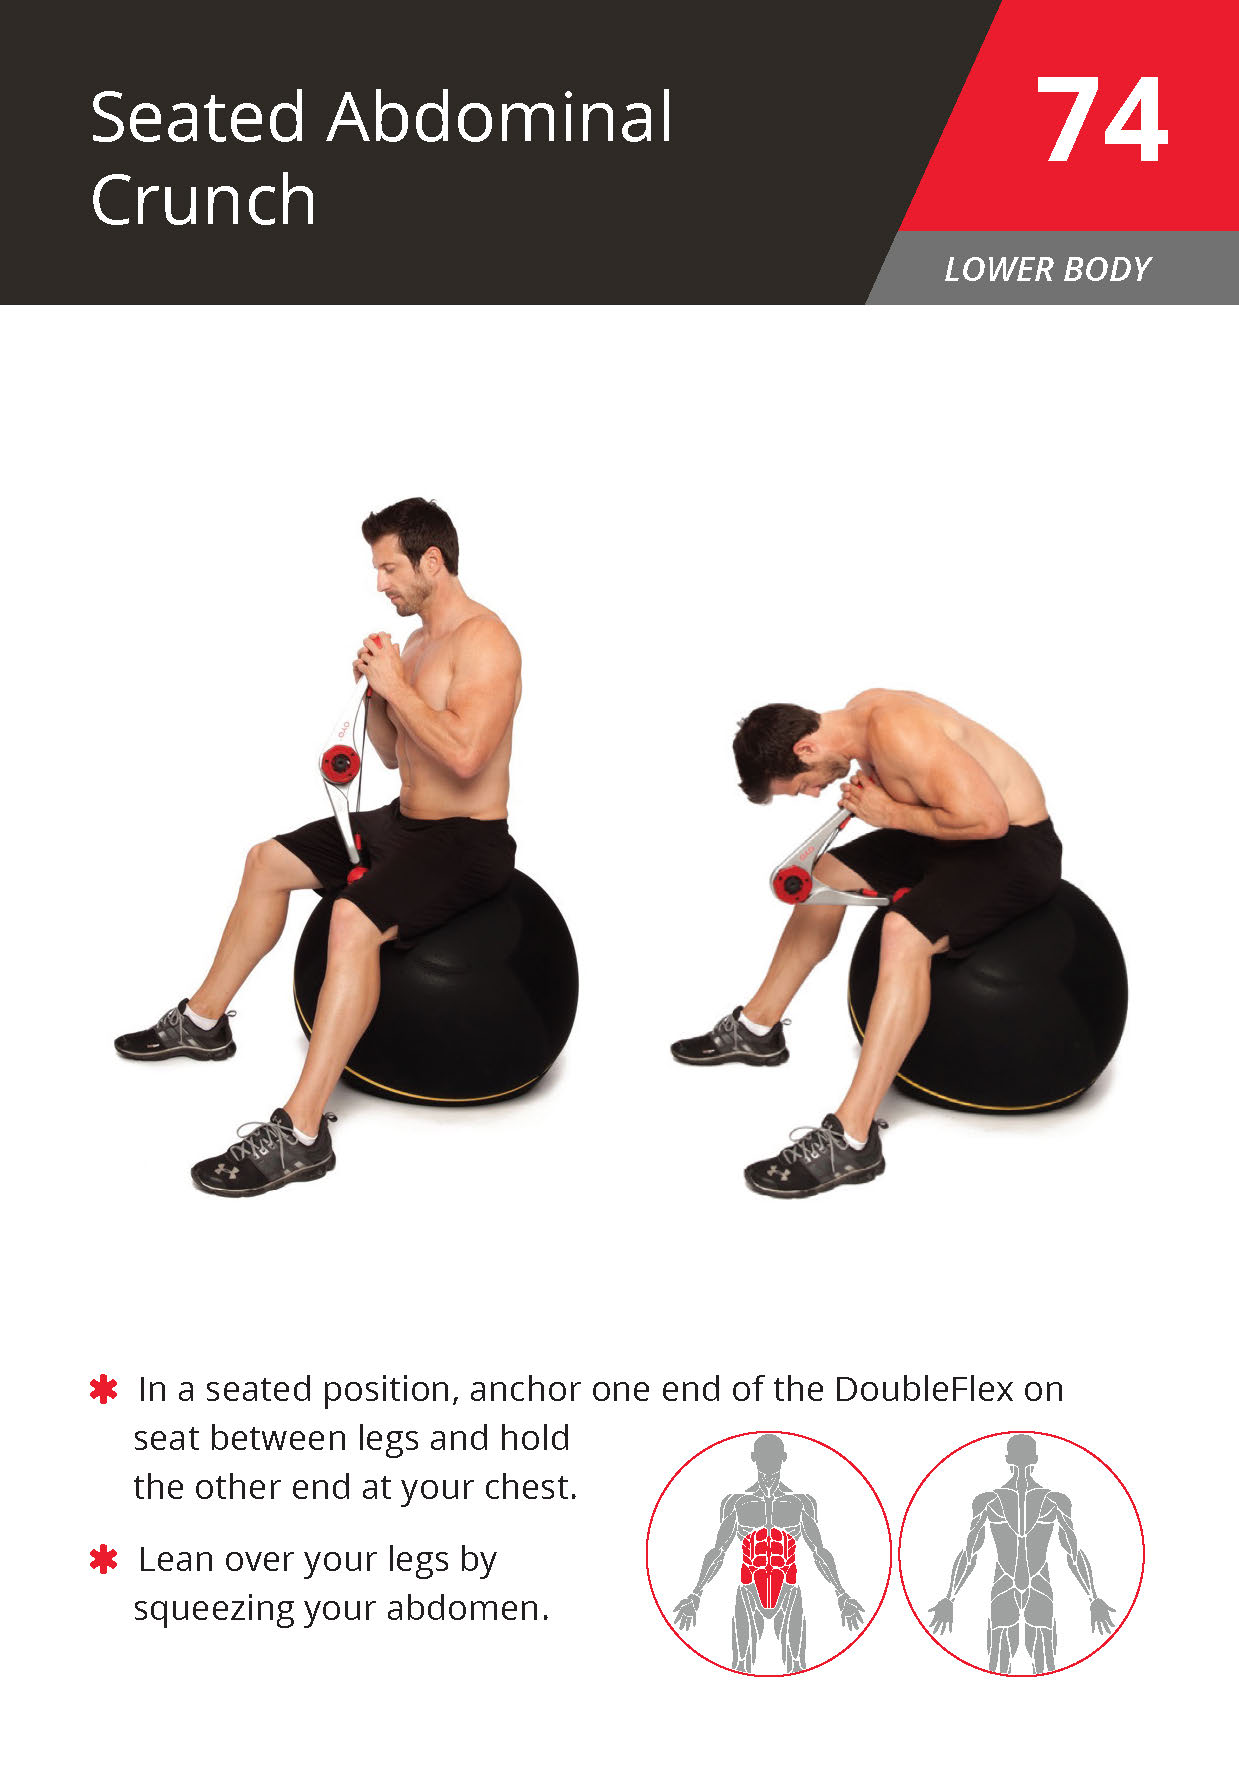 74 Seated Abdominal Crunch